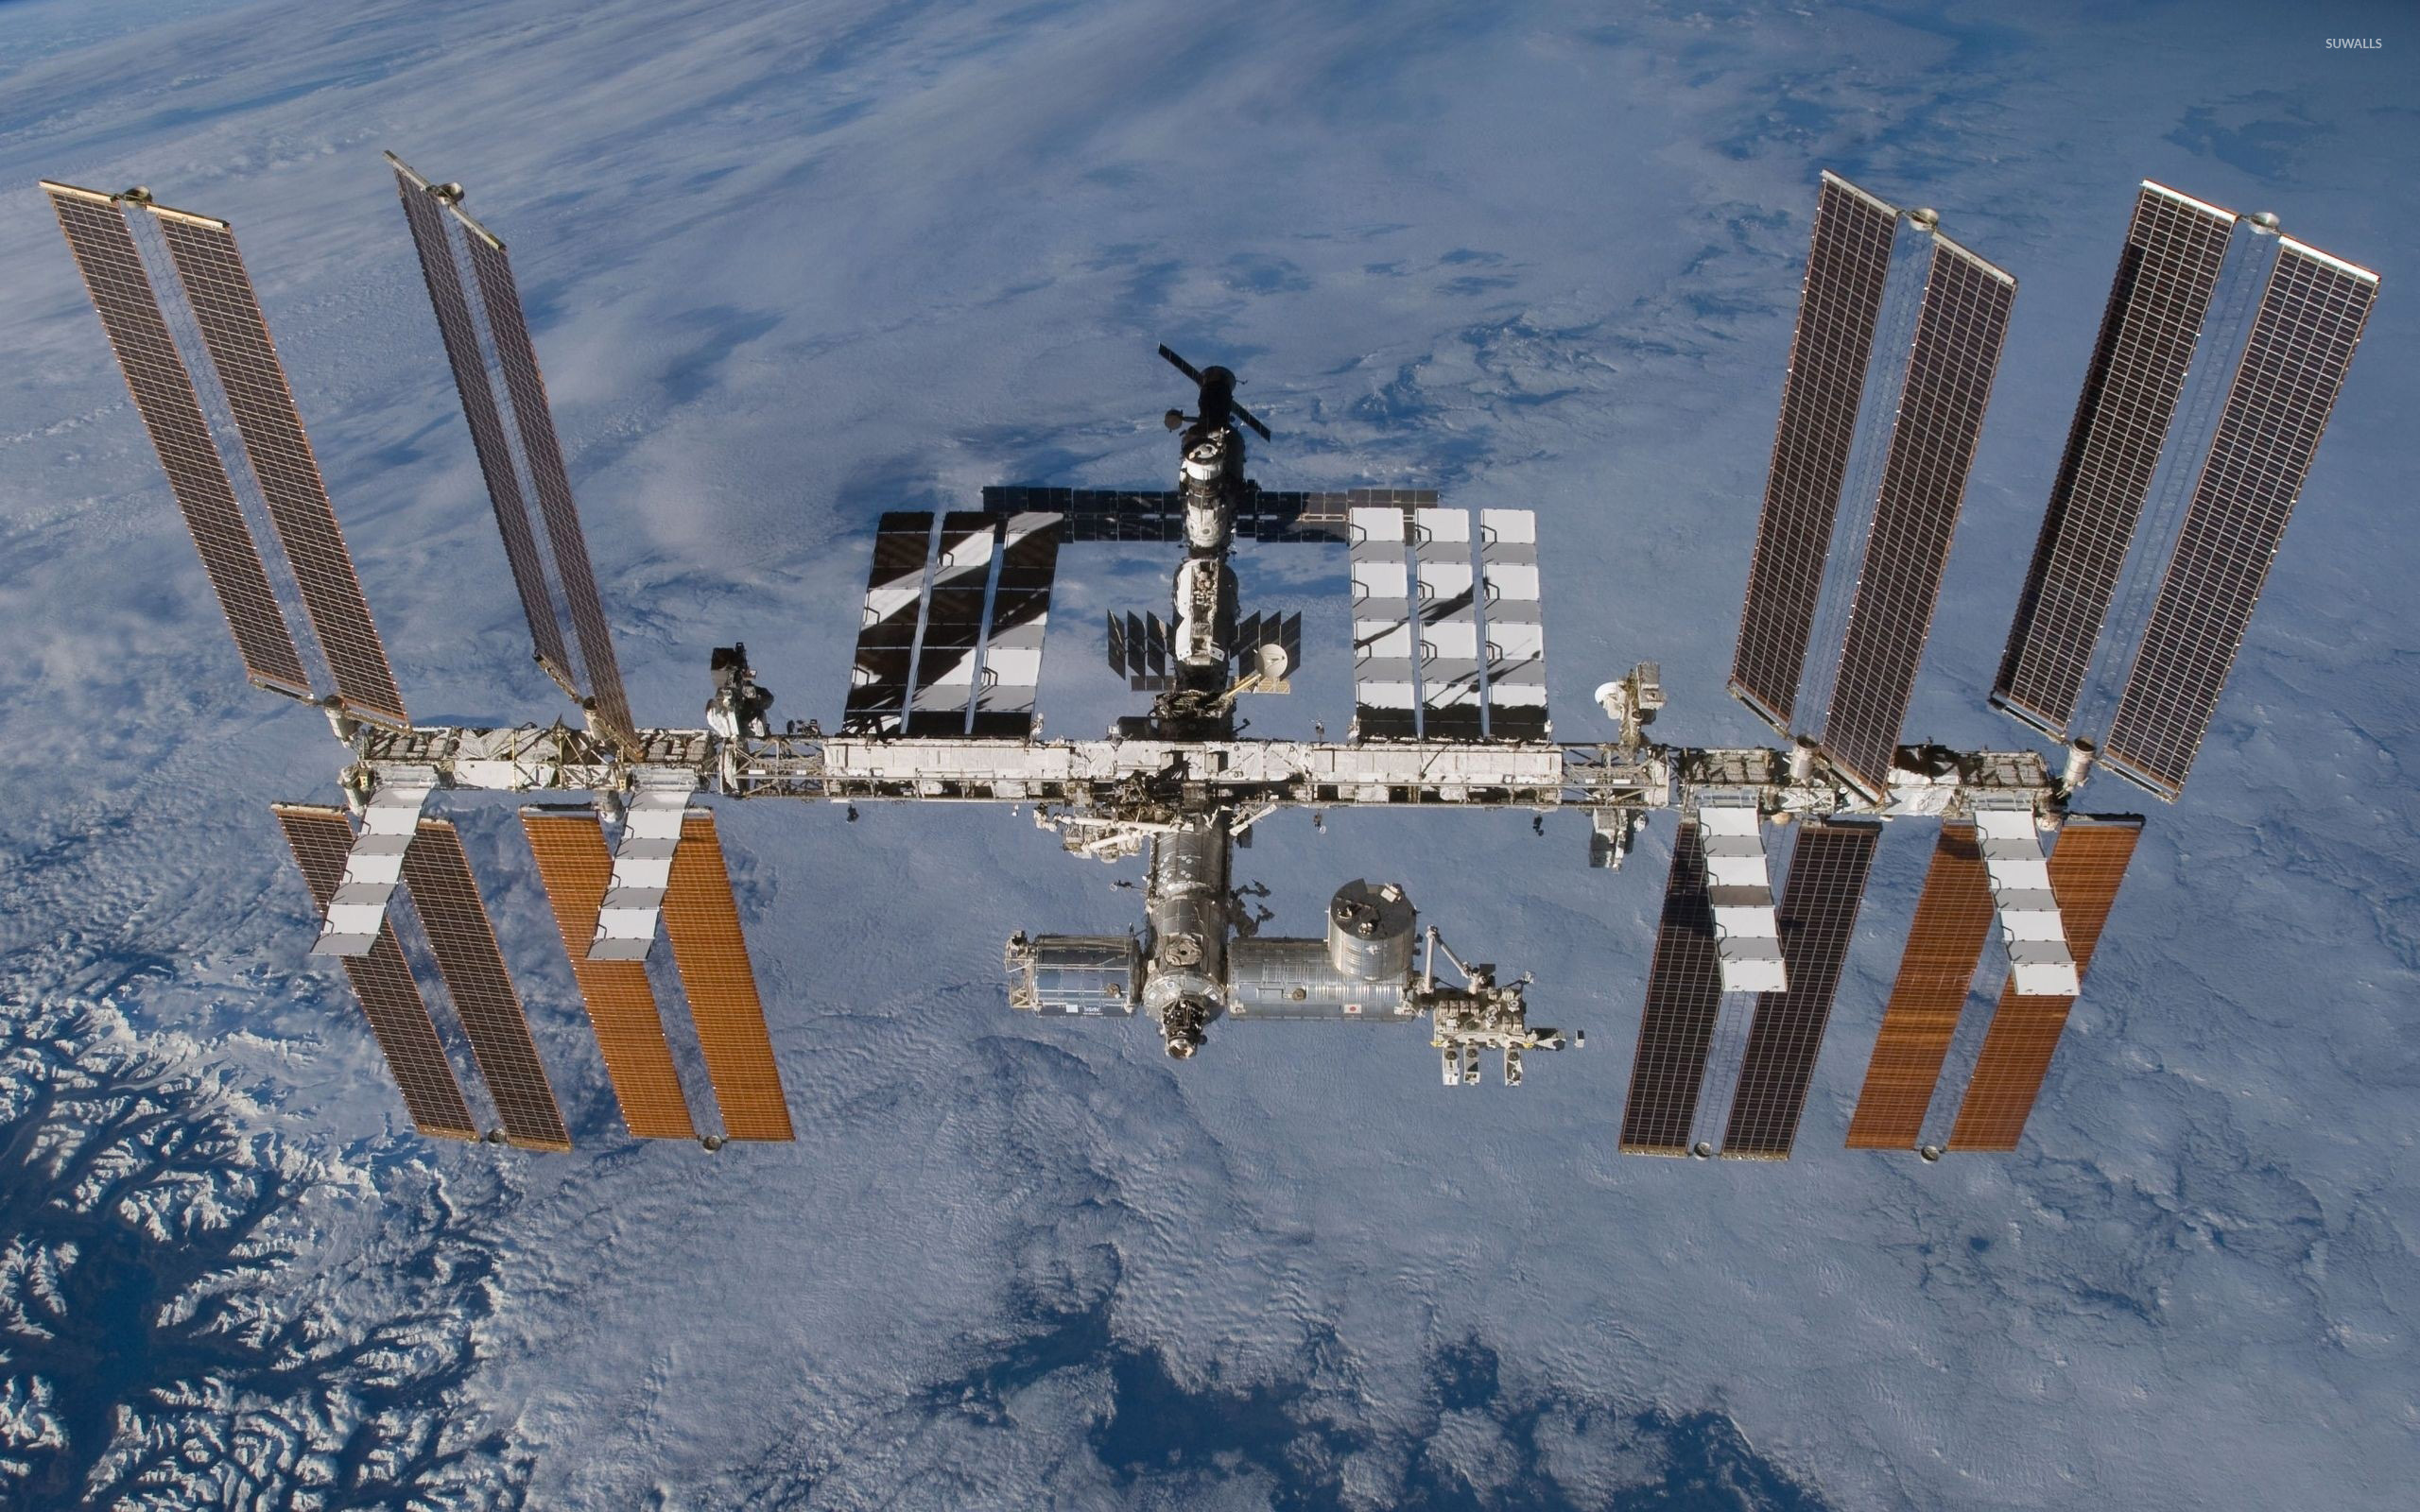 2560x1600 - Space Station Wallpapers 23